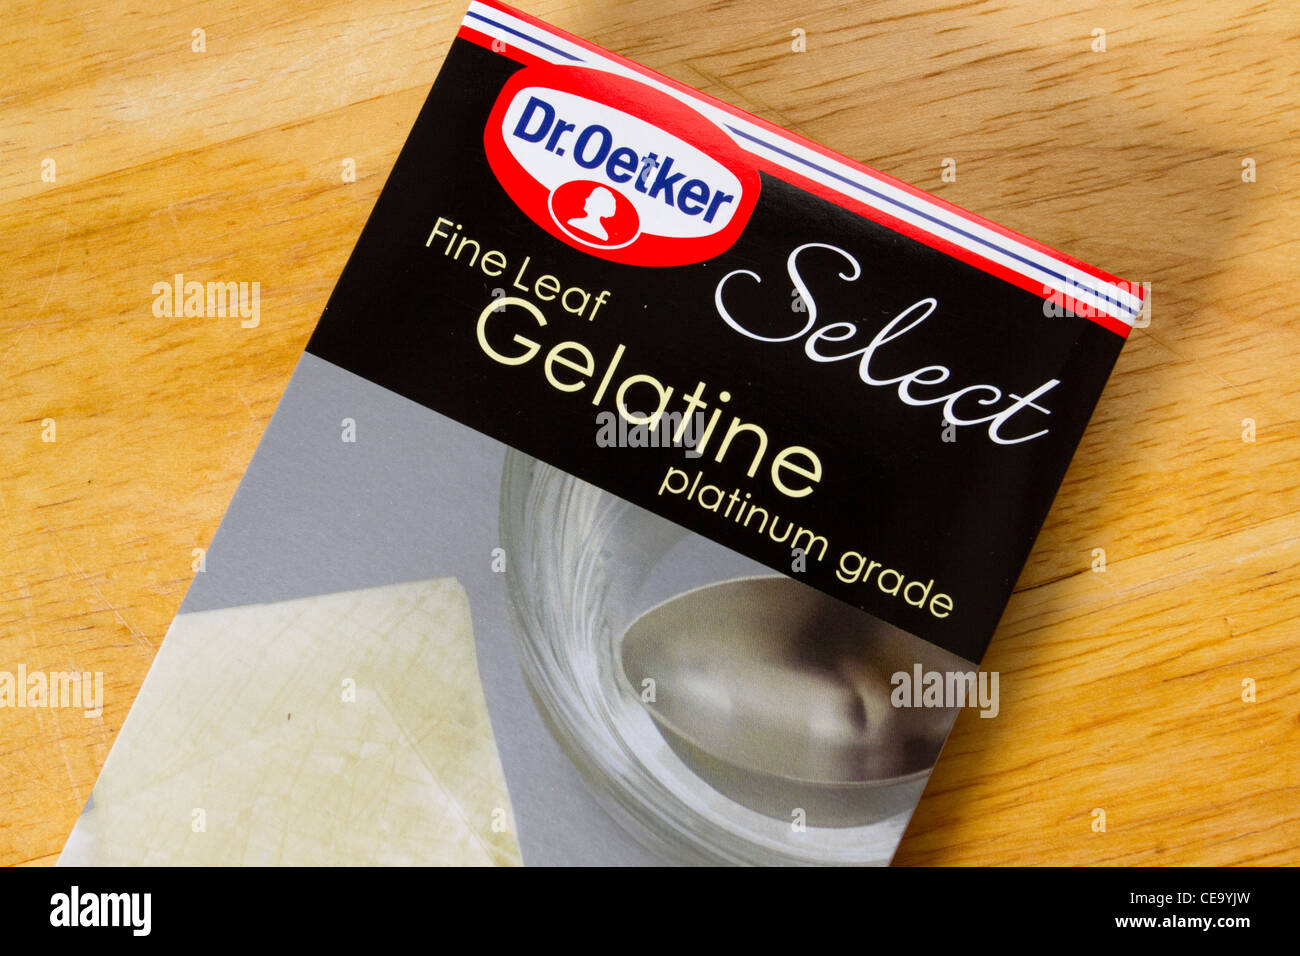 Packet of Dr Oetker Fine Leaf Gelatine, England, UK - Stock Image